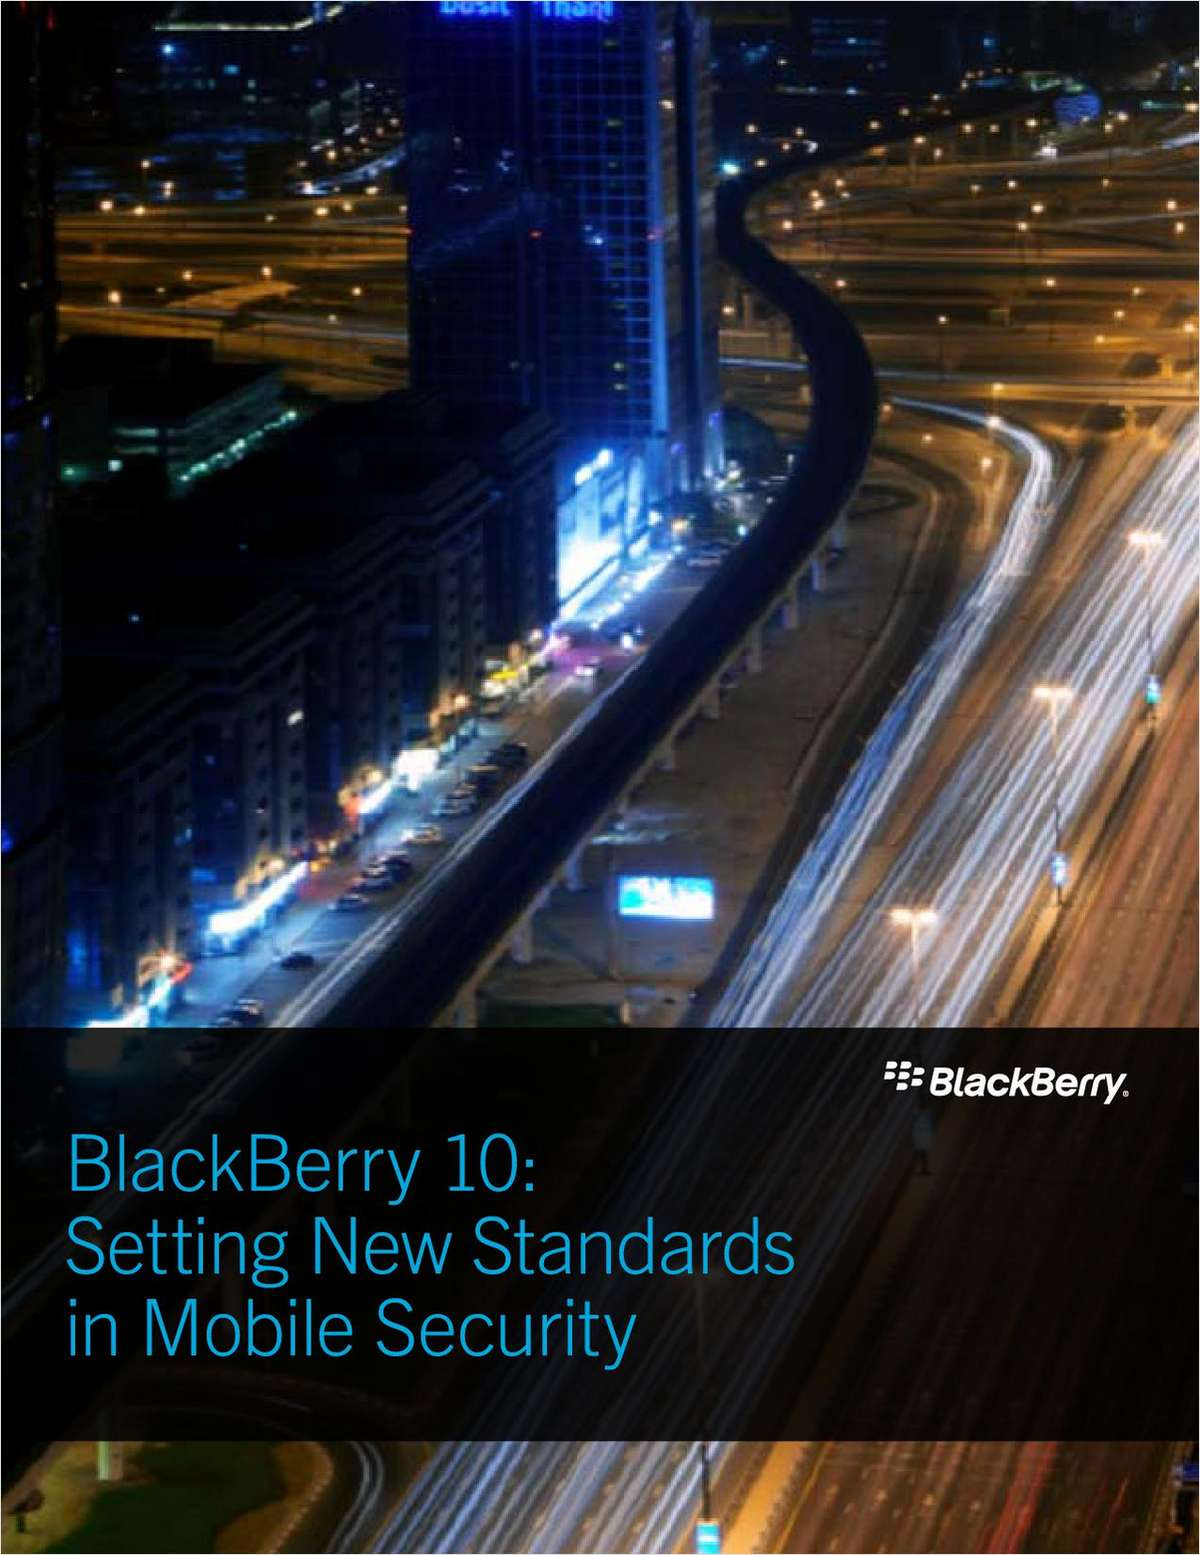 How BlackBerry 10 Sets New Standards in Mobile Security